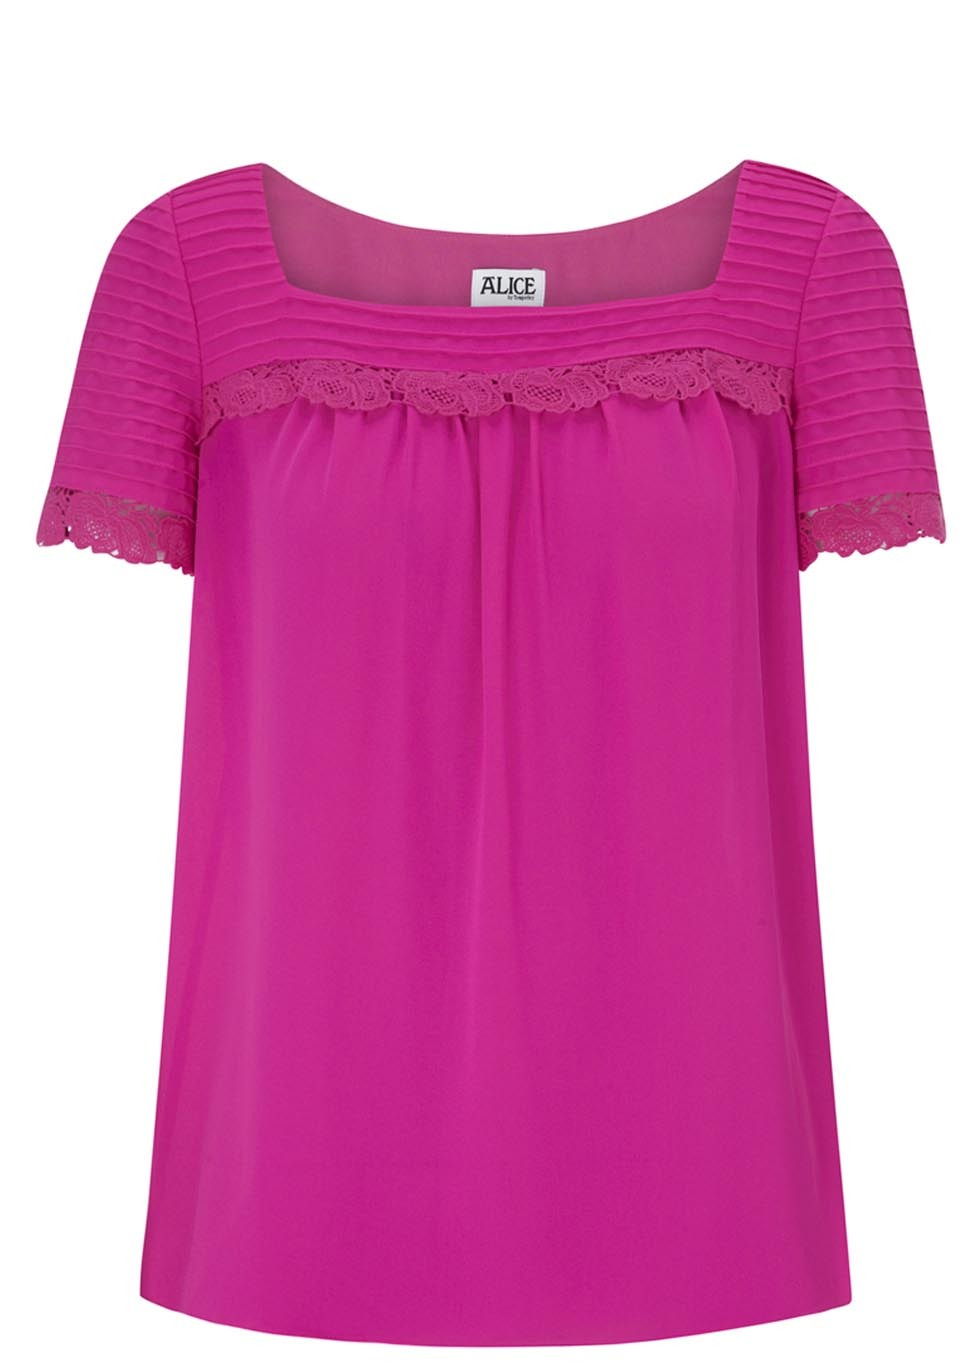 Mina Hot Pink Crepe Top - pattern: plain; bust detail: ruching/gathering/draping/layers/pintuck pleats at bust; predominant colour: magenta; occasions: casual, evening, creative work; length: standard; style: top; fibres: polyester/polyamide - 100%; fit: straight cut; sleeve length: short sleeve; sleeve style: standard; texture group: crepes; neckline: medium square neck; pattern type: fabric; trends: hot brights; season: s/s 2014